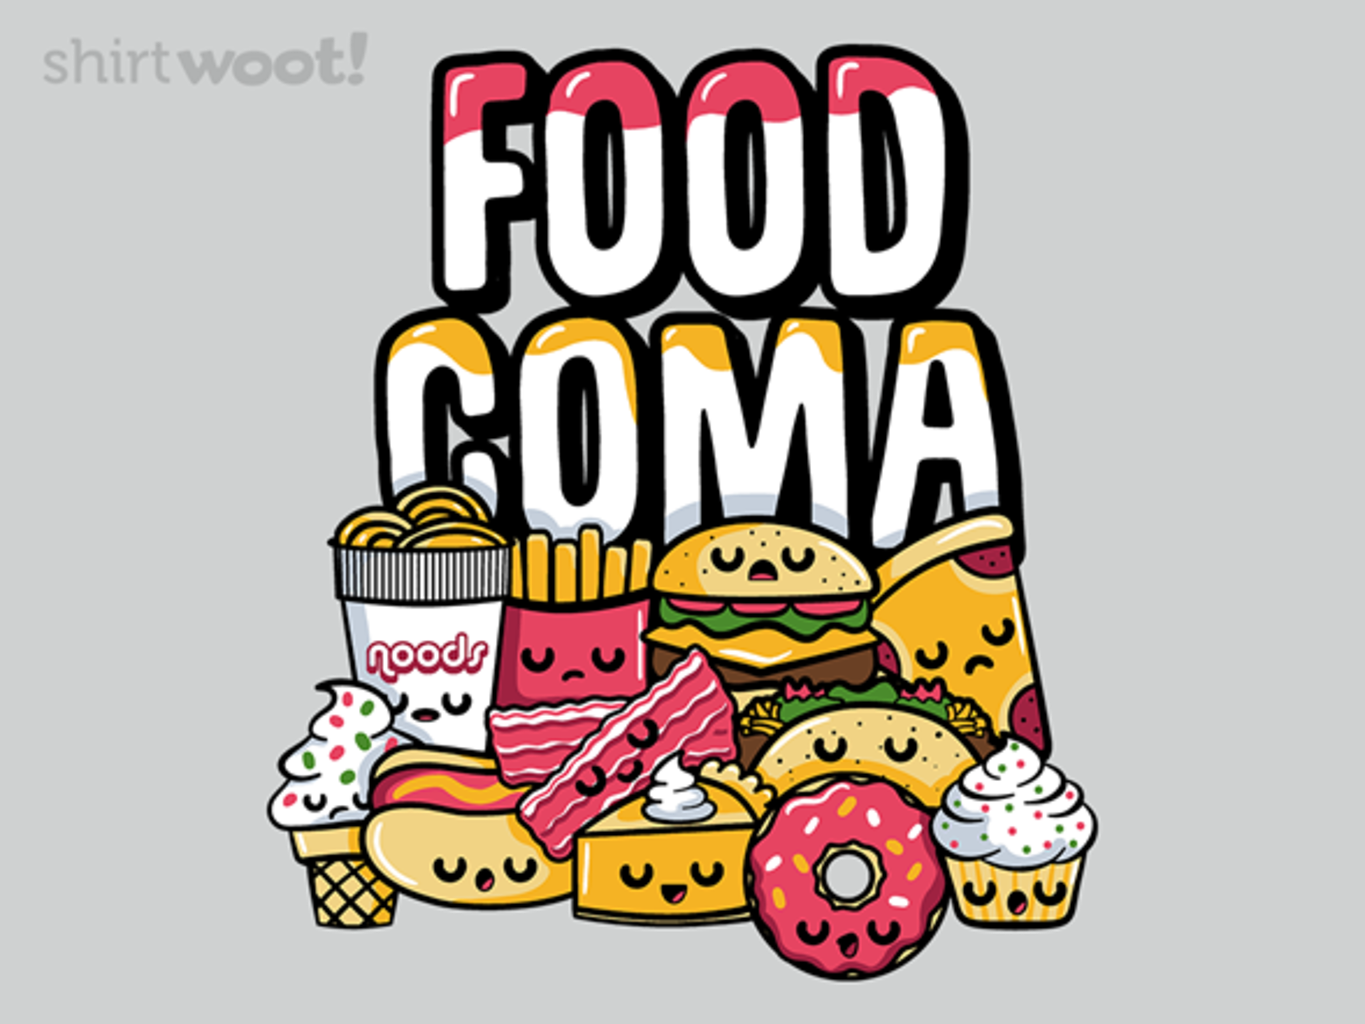 Woot!: Food Coma - $15.00 + Free shipping